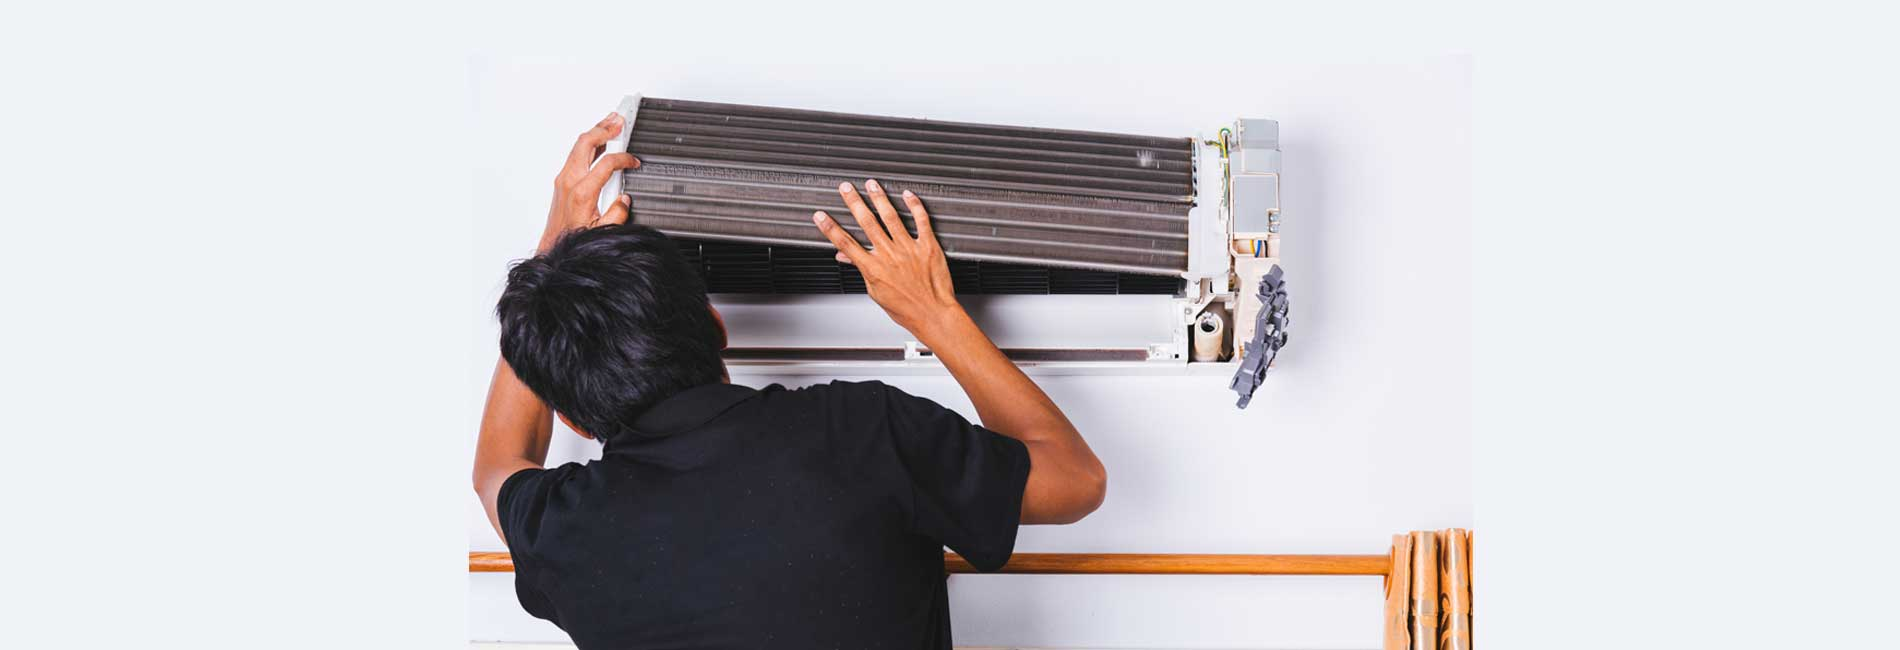 Bluestar Air Condition Repair in Gerugambakkam